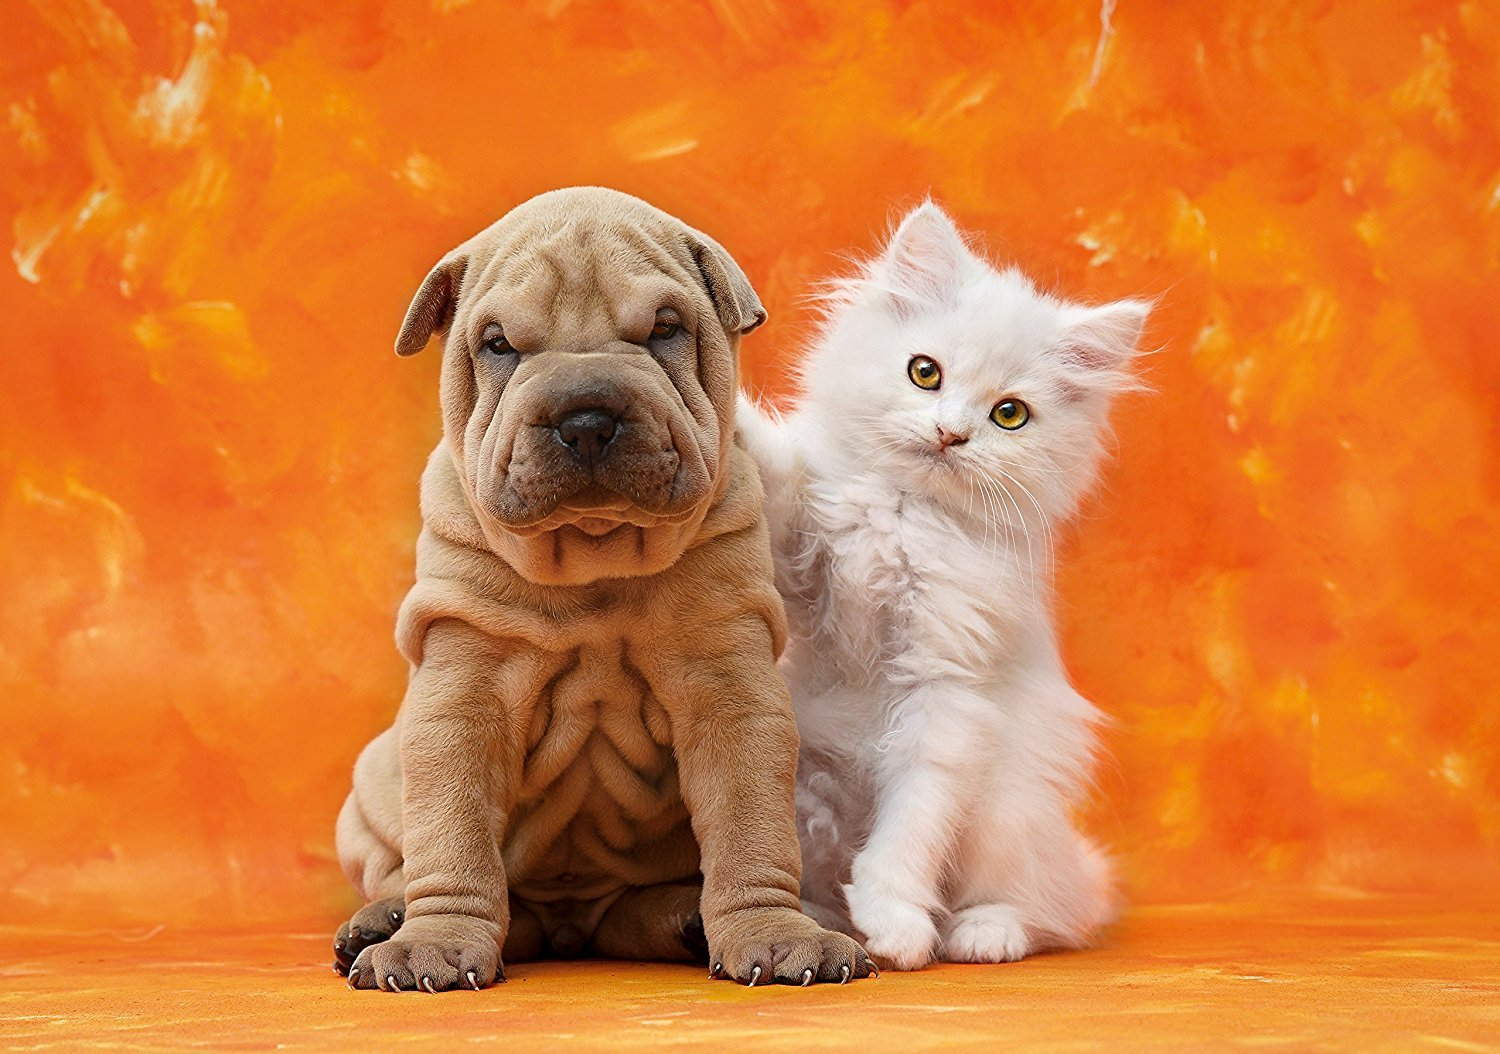 dog-and-cat-jigsaw-puzzle-1000-pieces photo so-cute